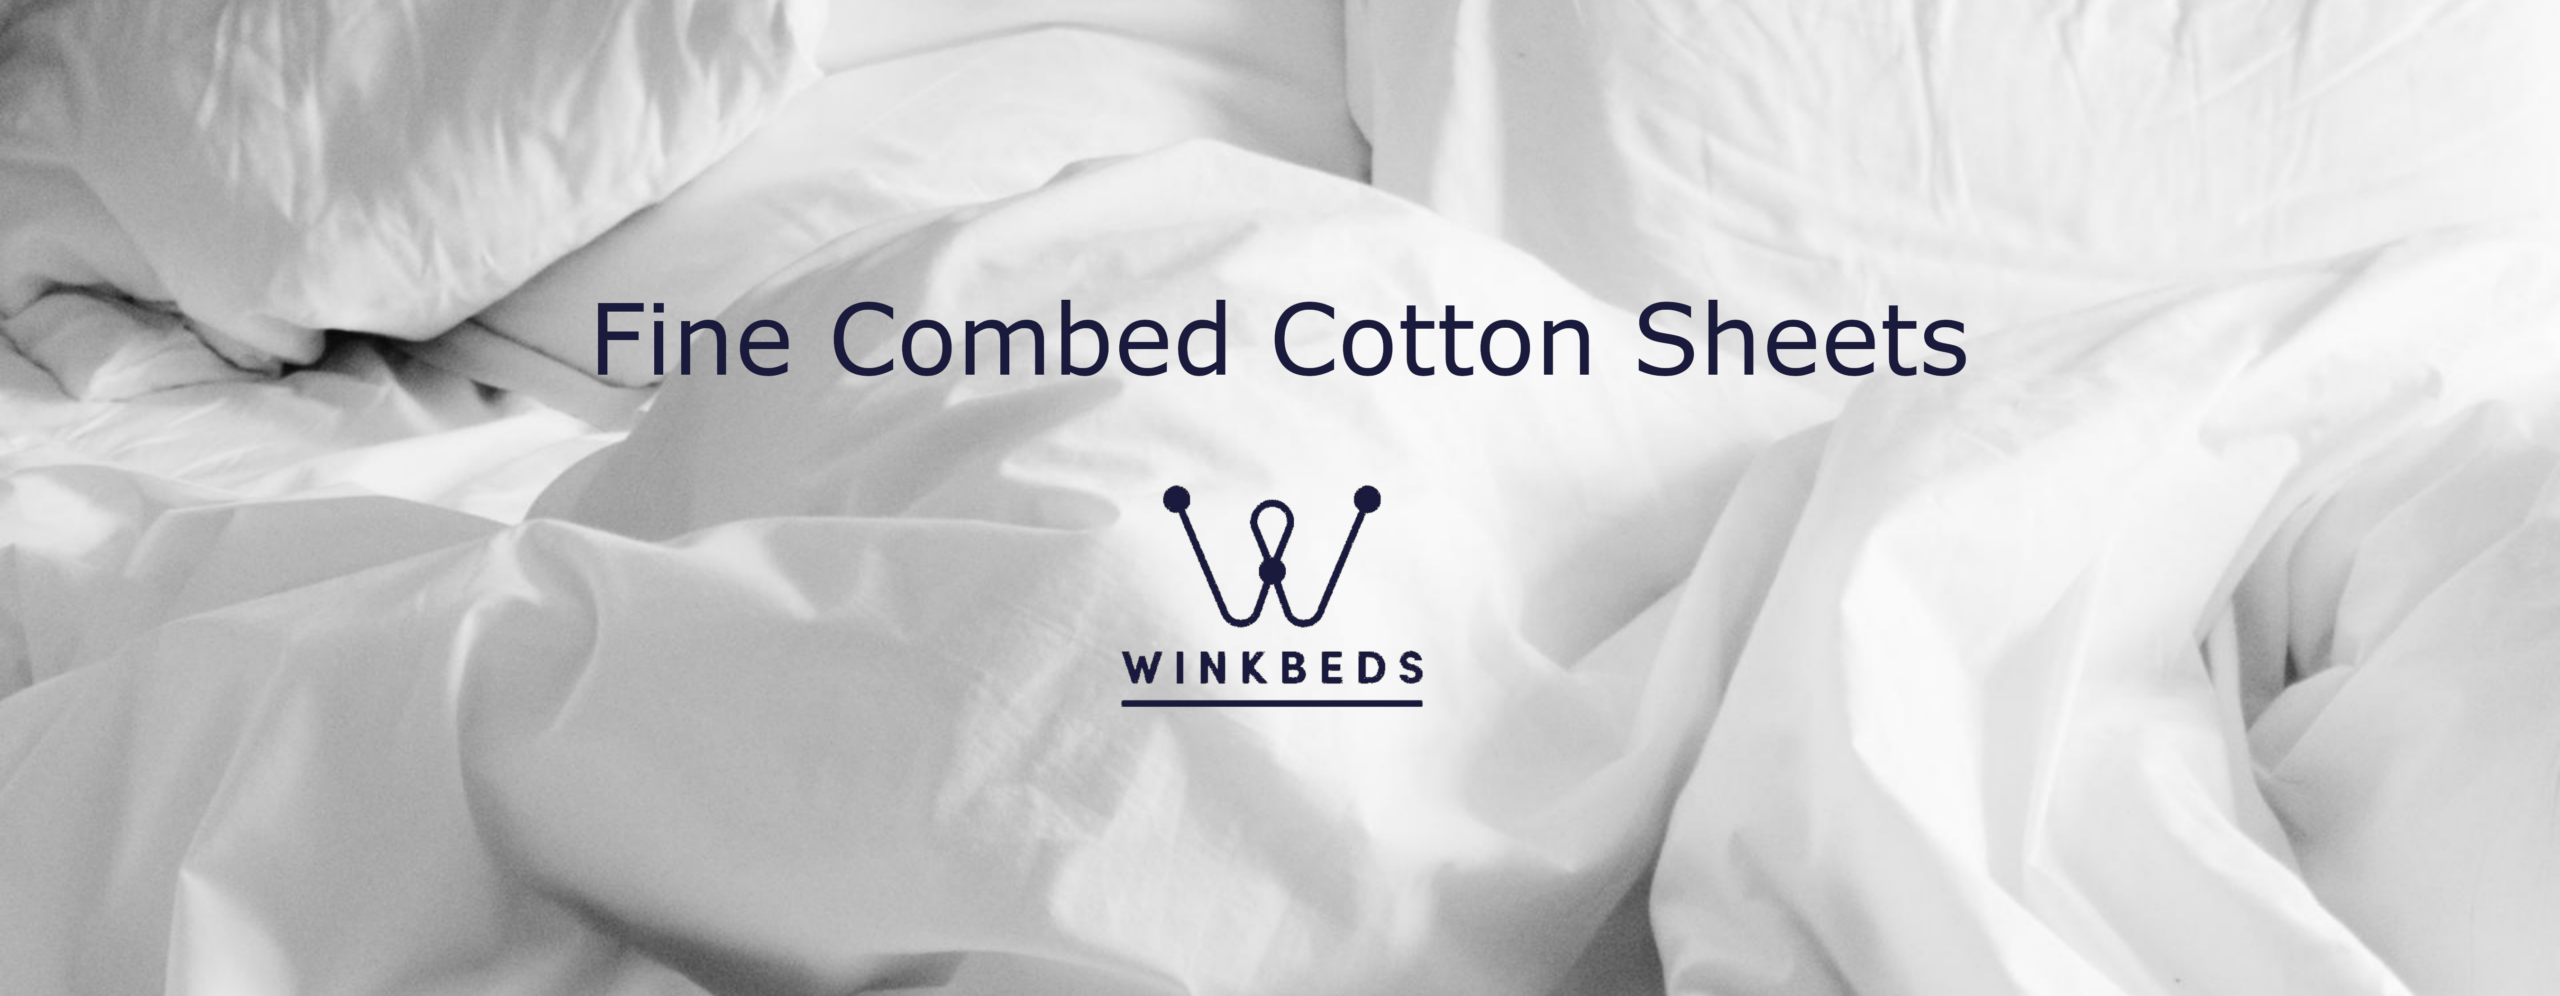 fine-combed cotton sheets winkbeds